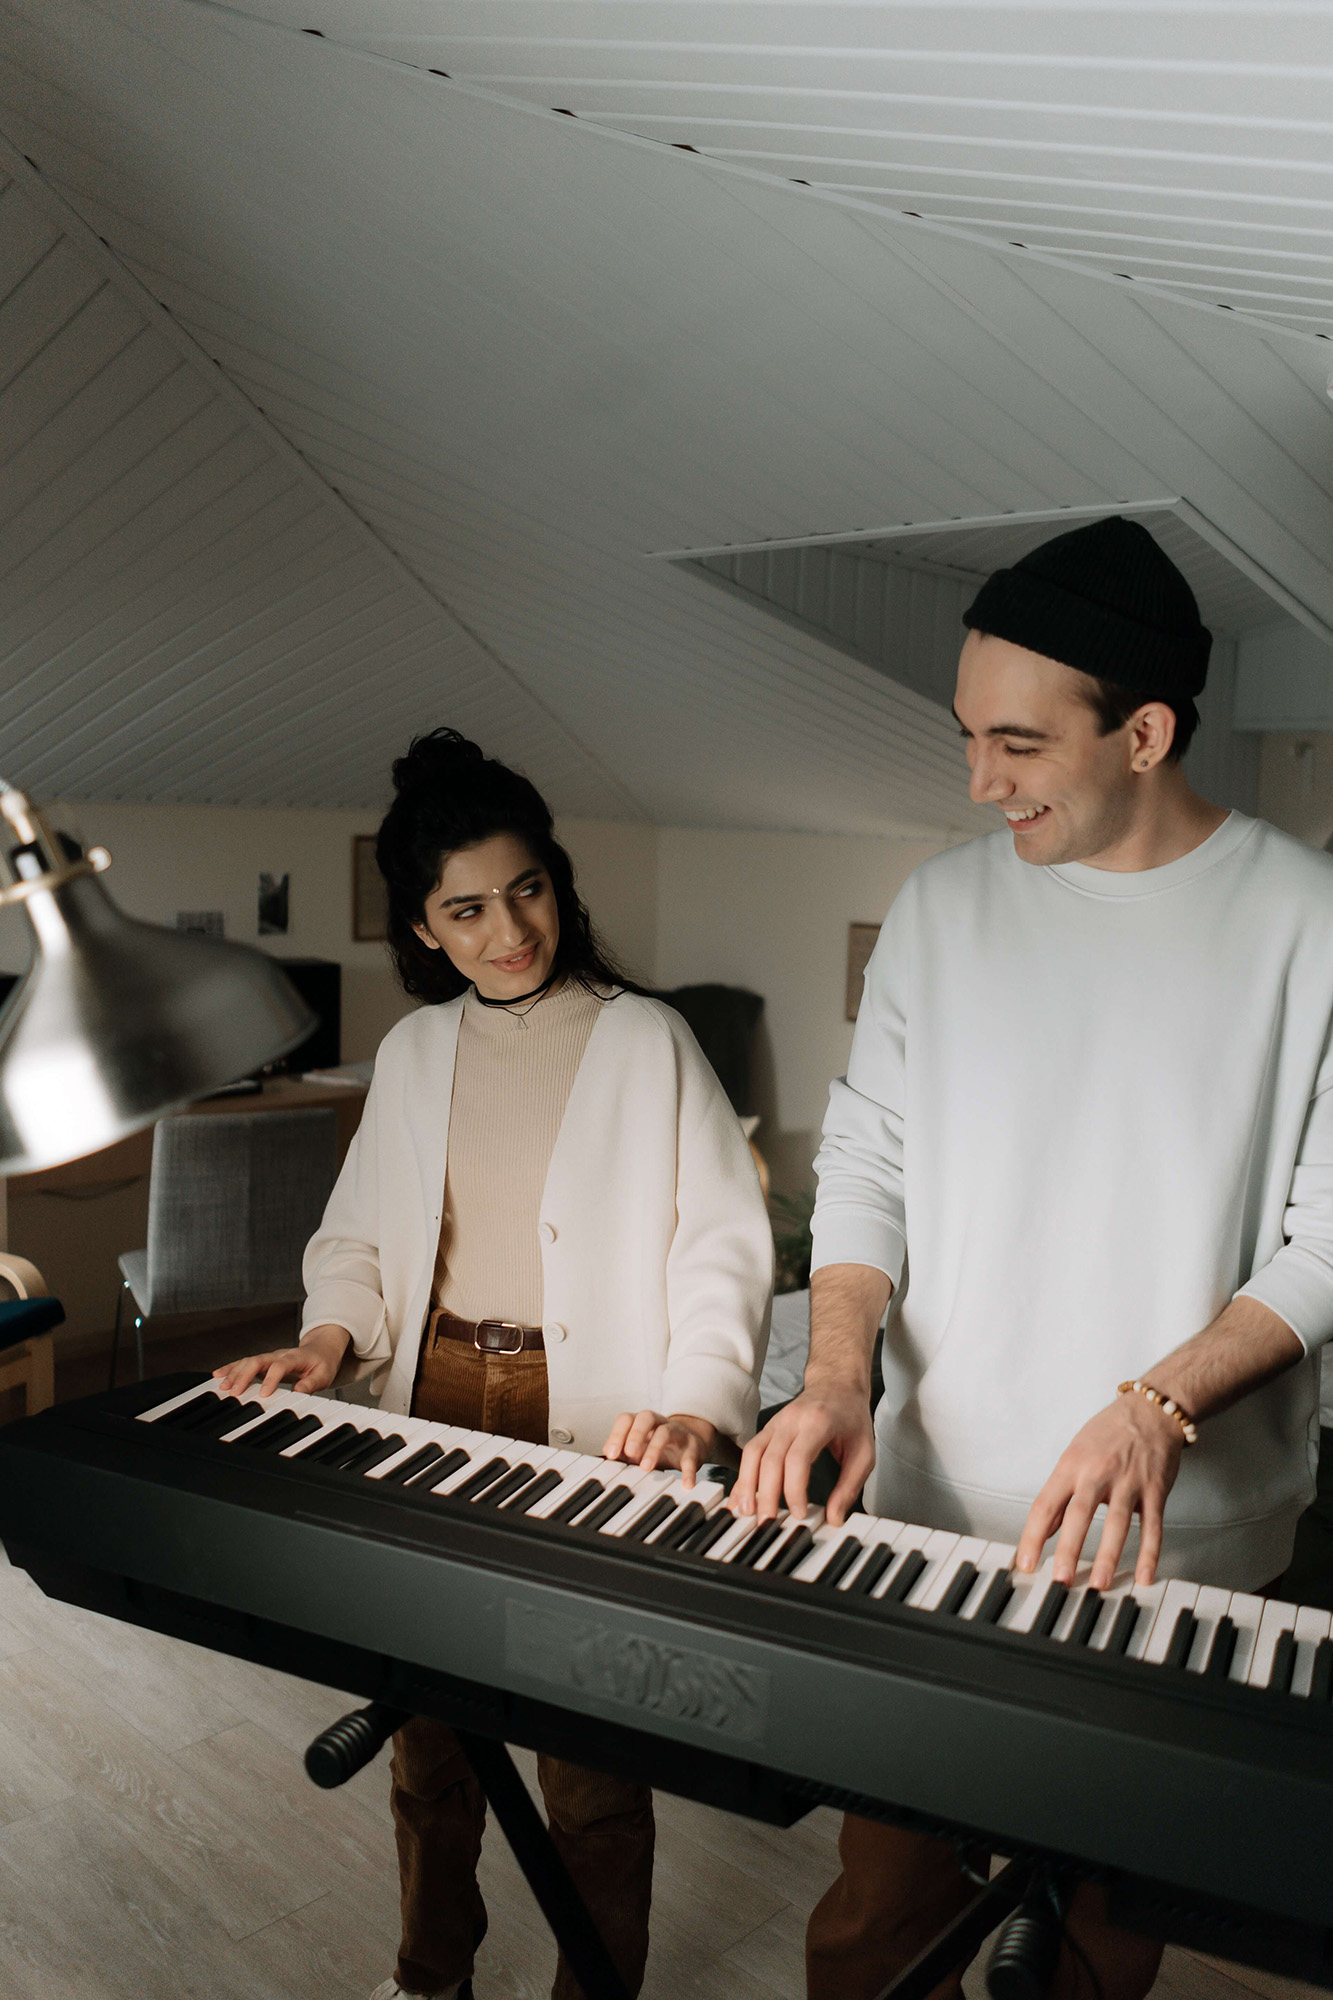 Man and woman playing keyboard together in low ceiling room.